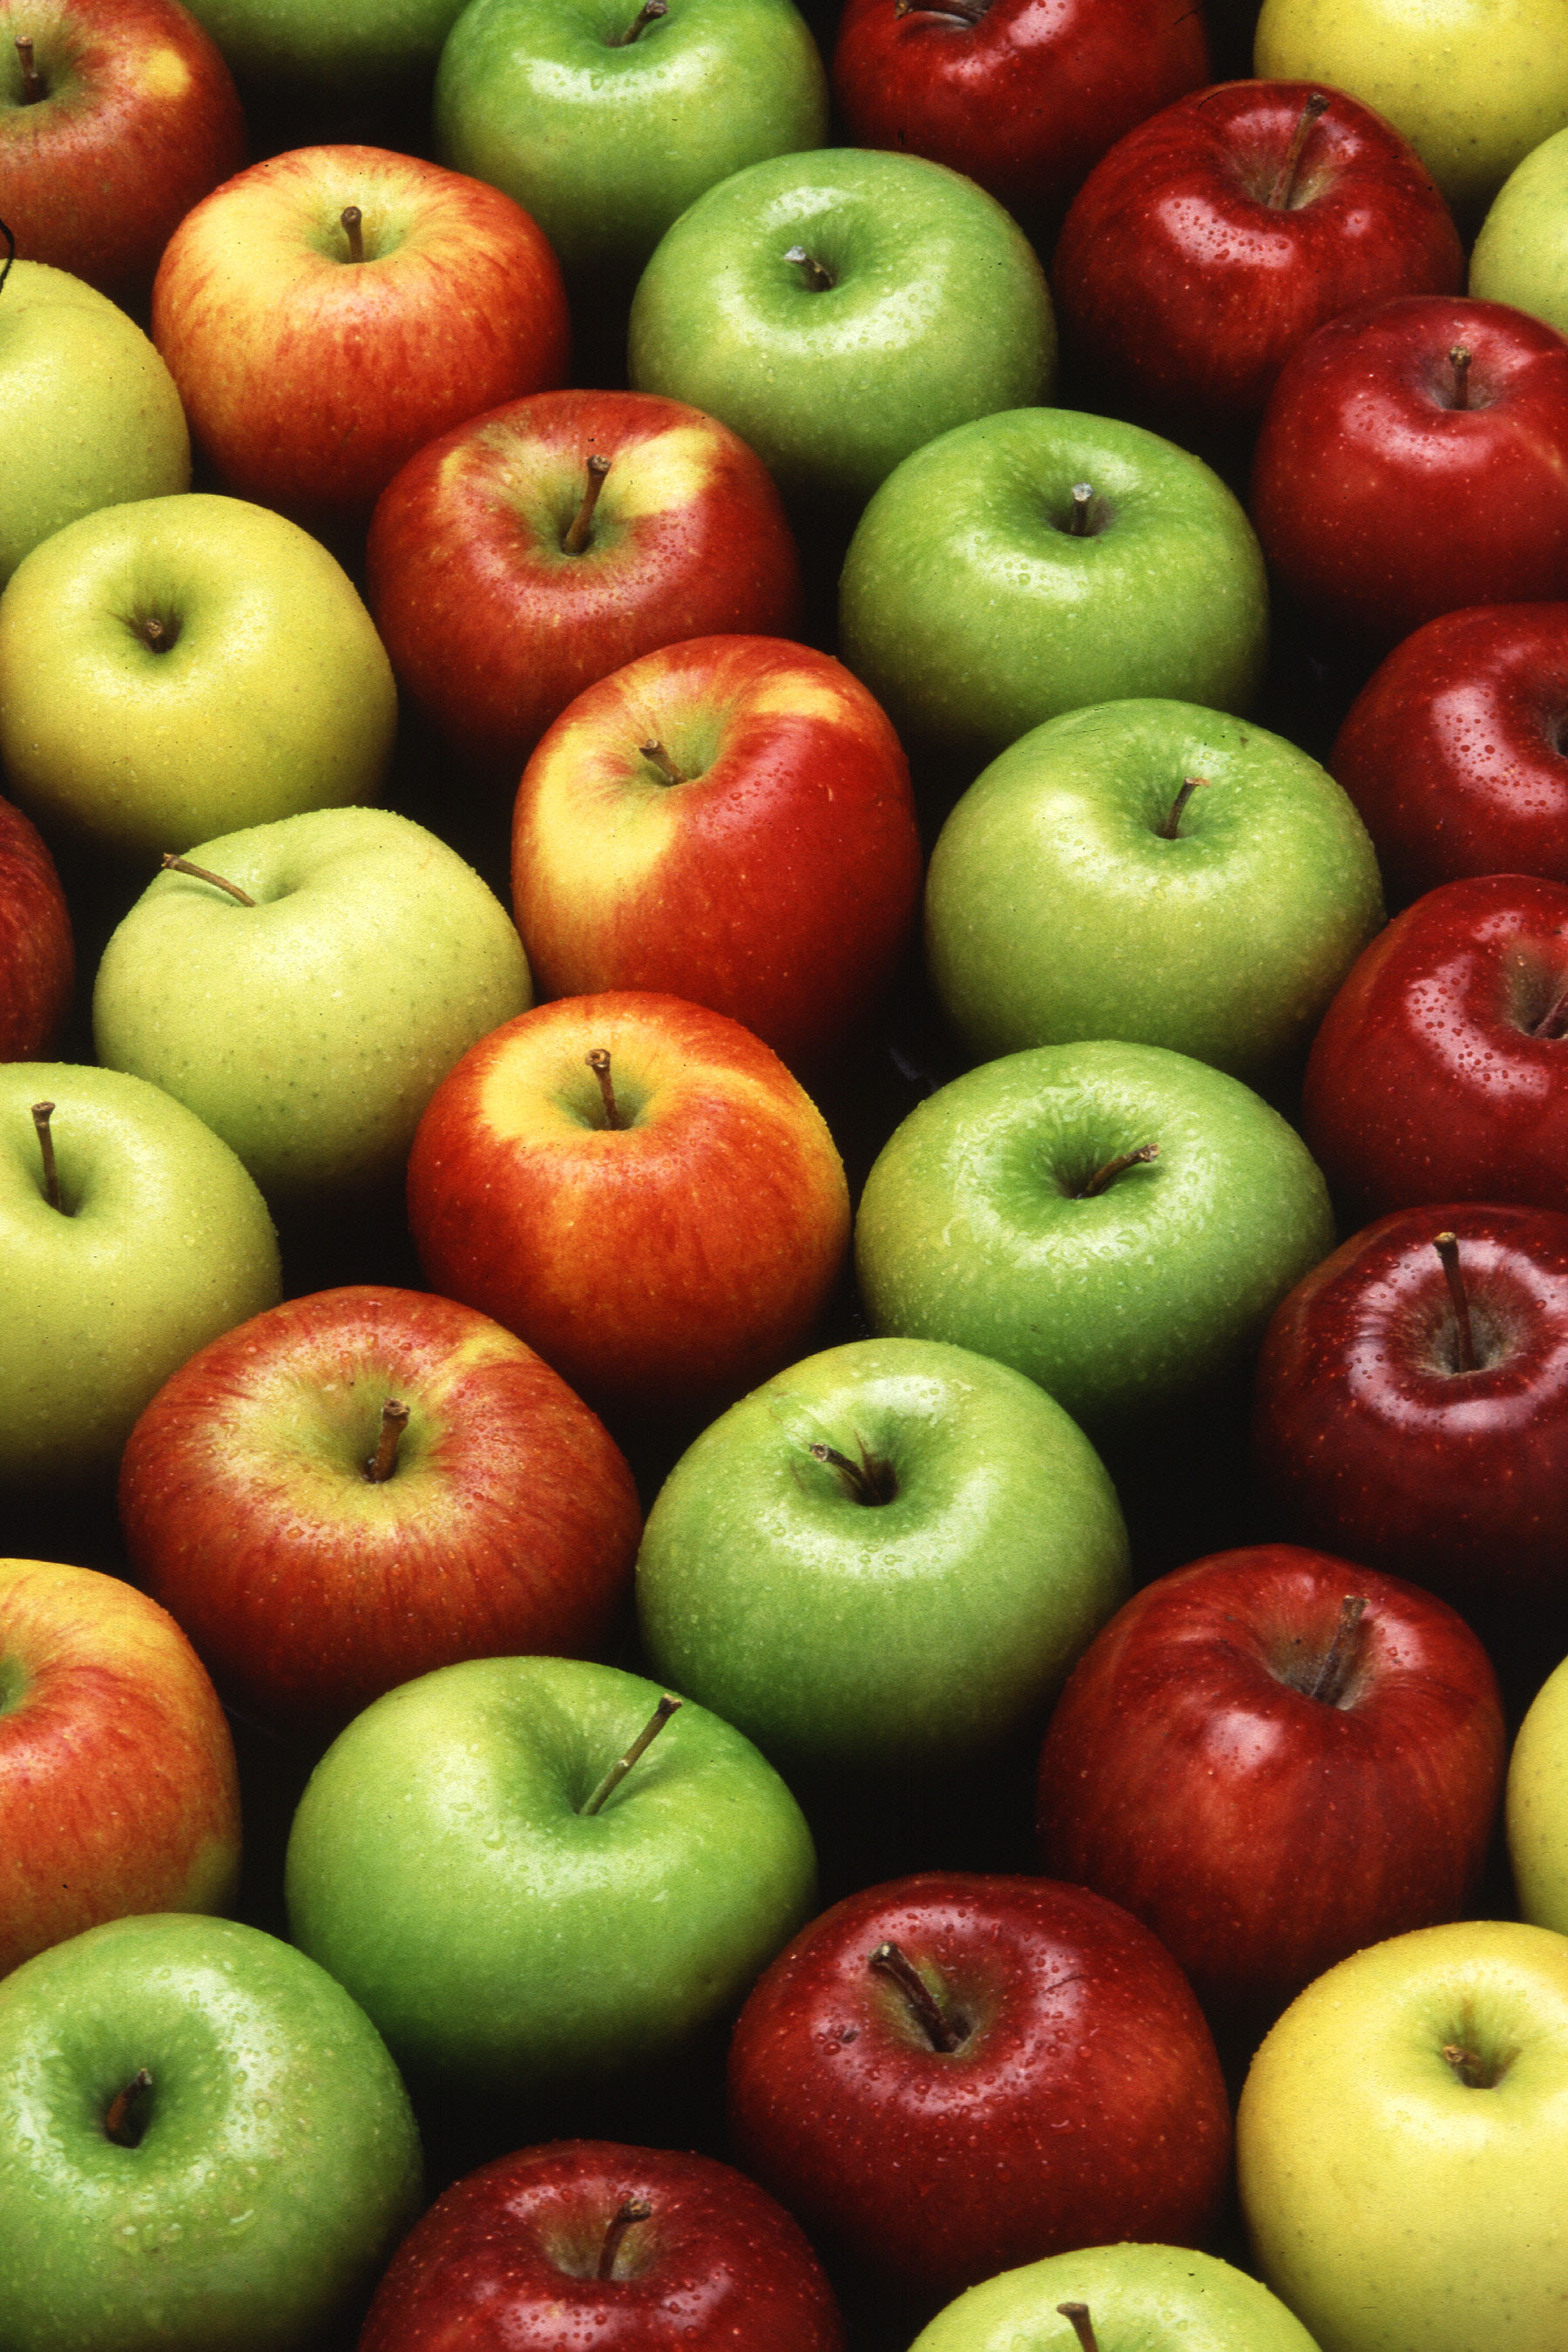 Picture of different colours and varieties of apples